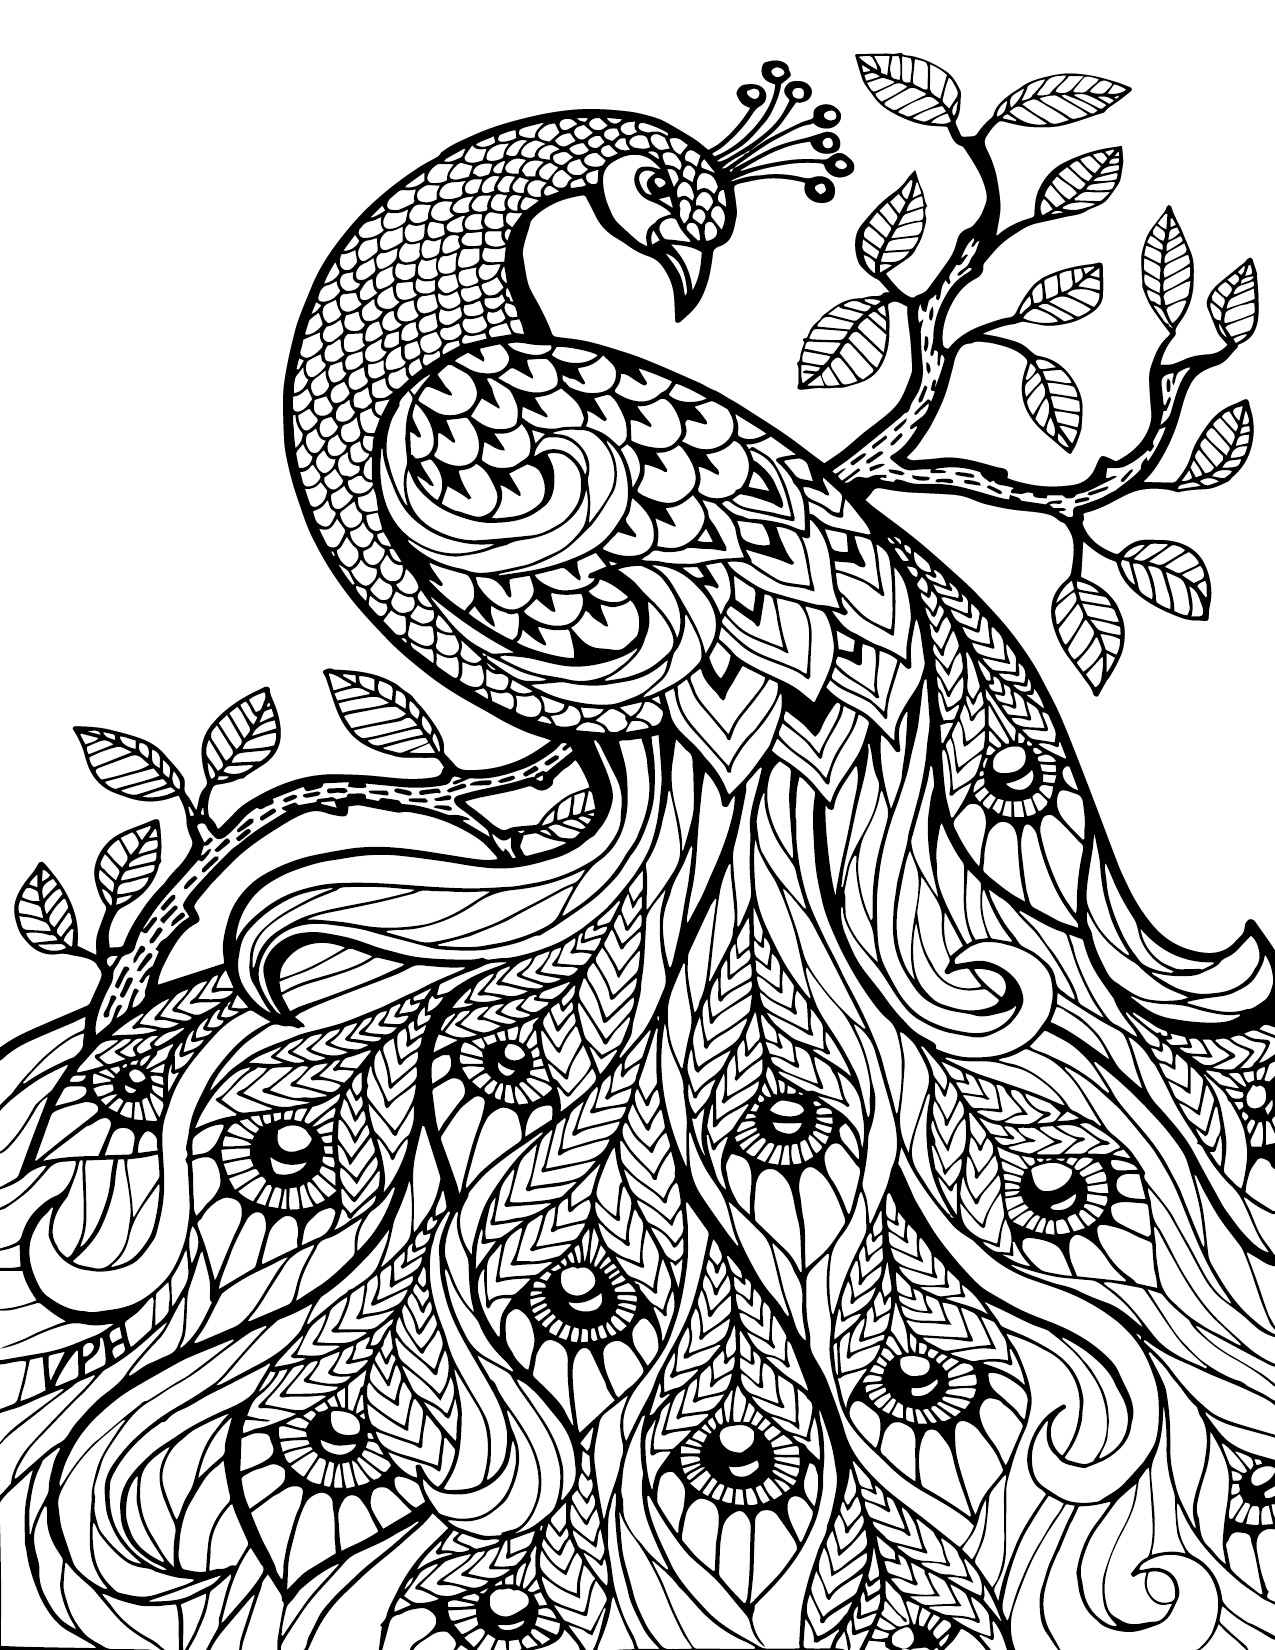 coloring pages online for adults free download adult coloring pages coloring for adults online pages